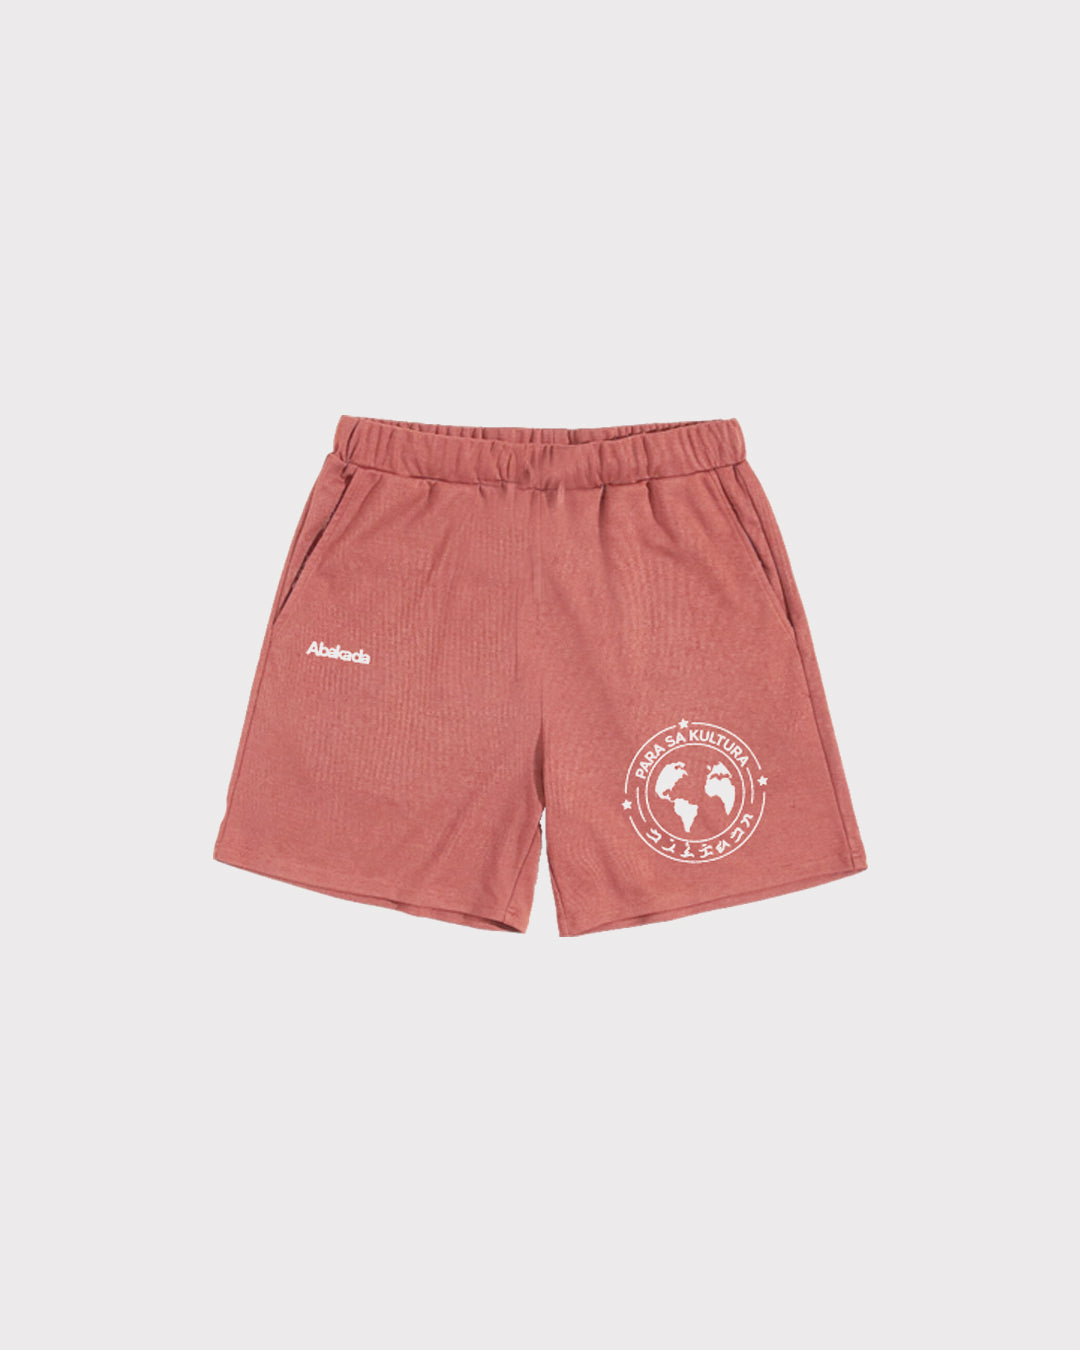 Abakada® Cloud Women Shorts (Salmon)